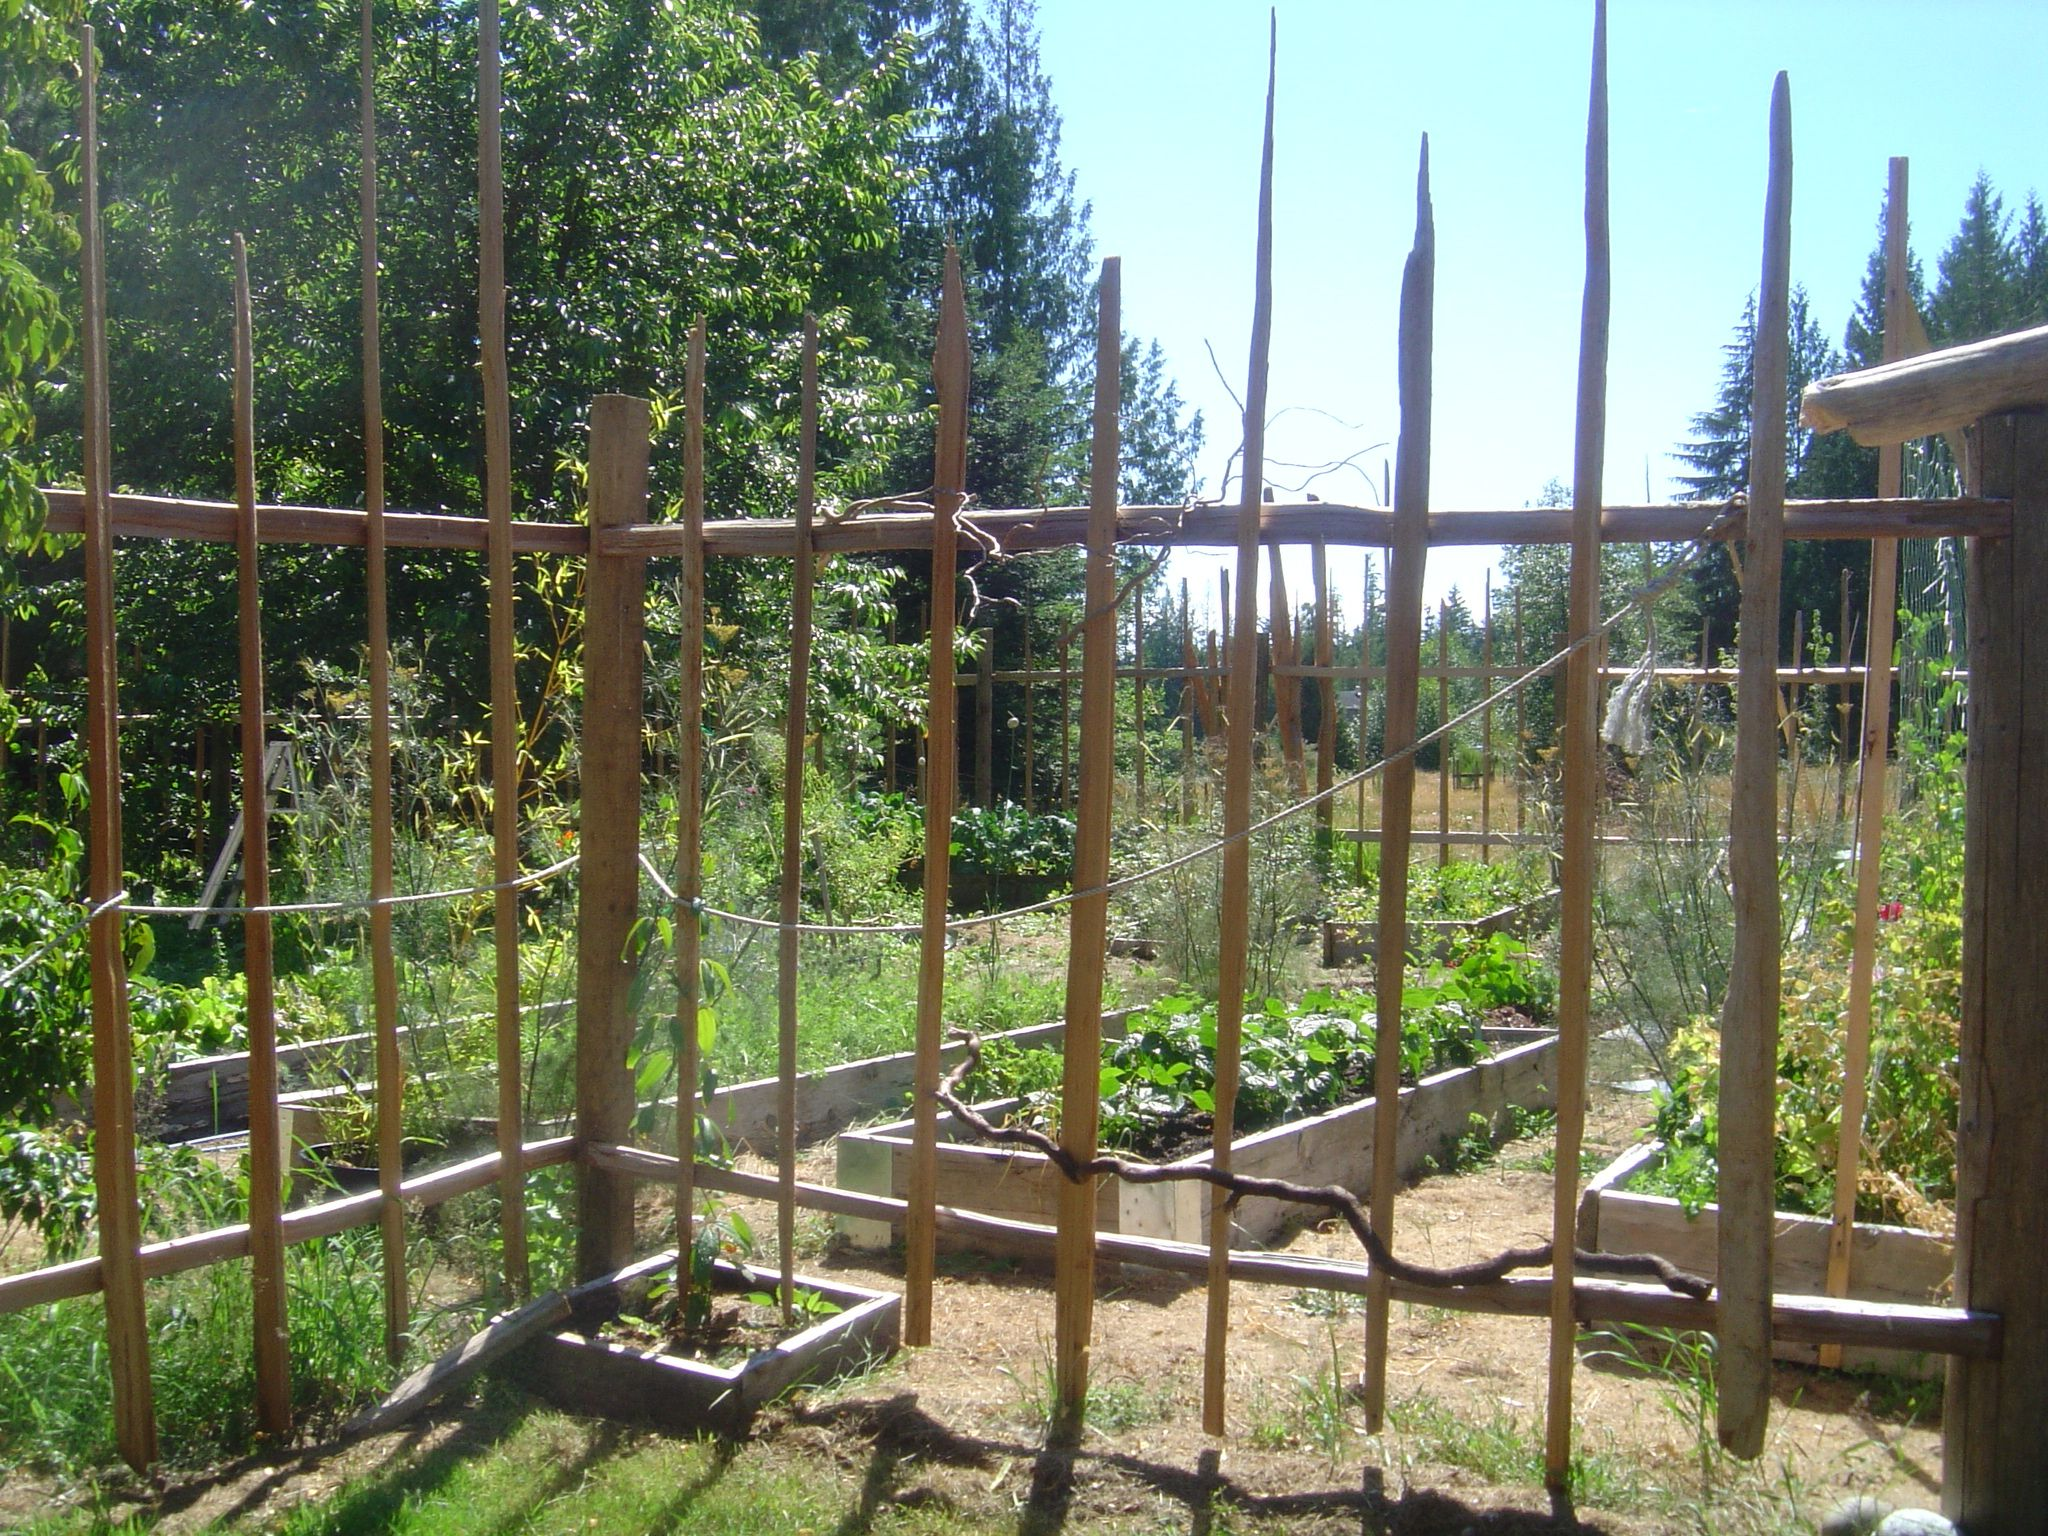 diy garden deer fence and how to build a deer proof funky garden enclosure - Deer Proof Vegetable Garden Ideas